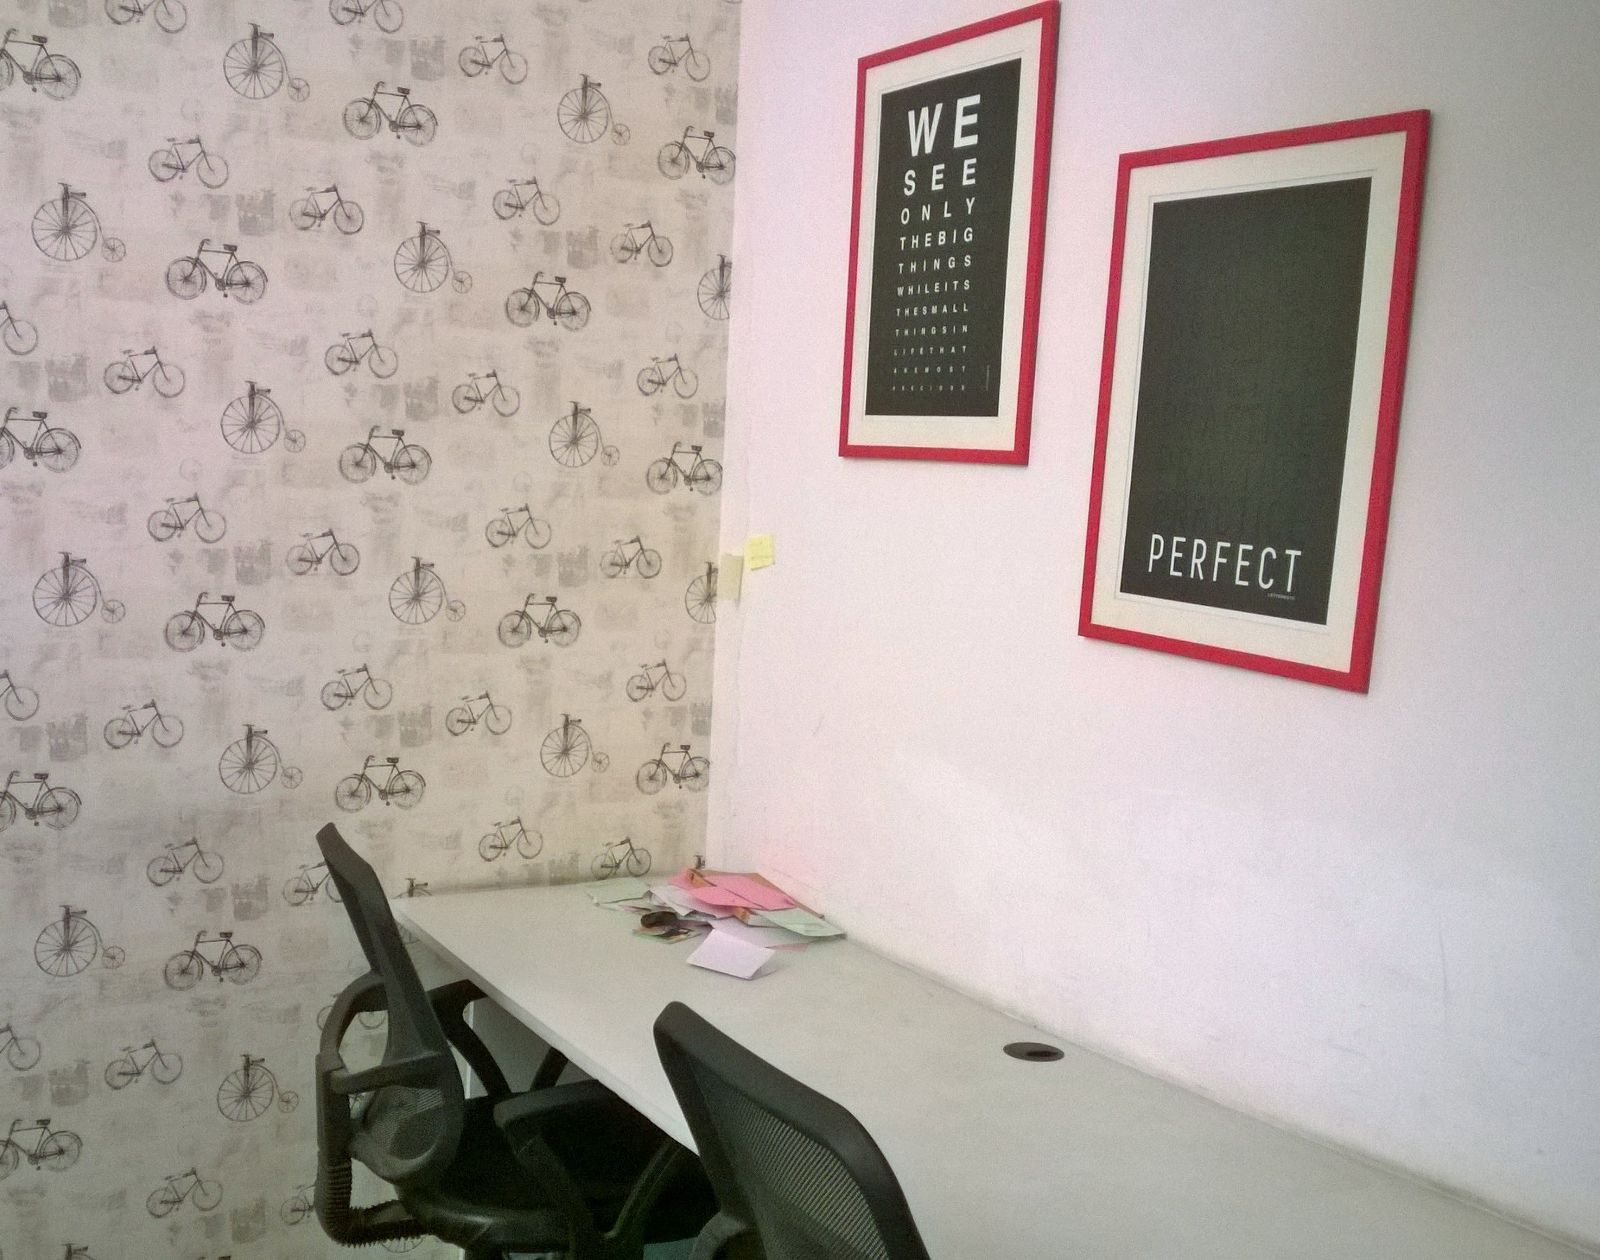 Cercles-coworking space in new delhi - Kowrk